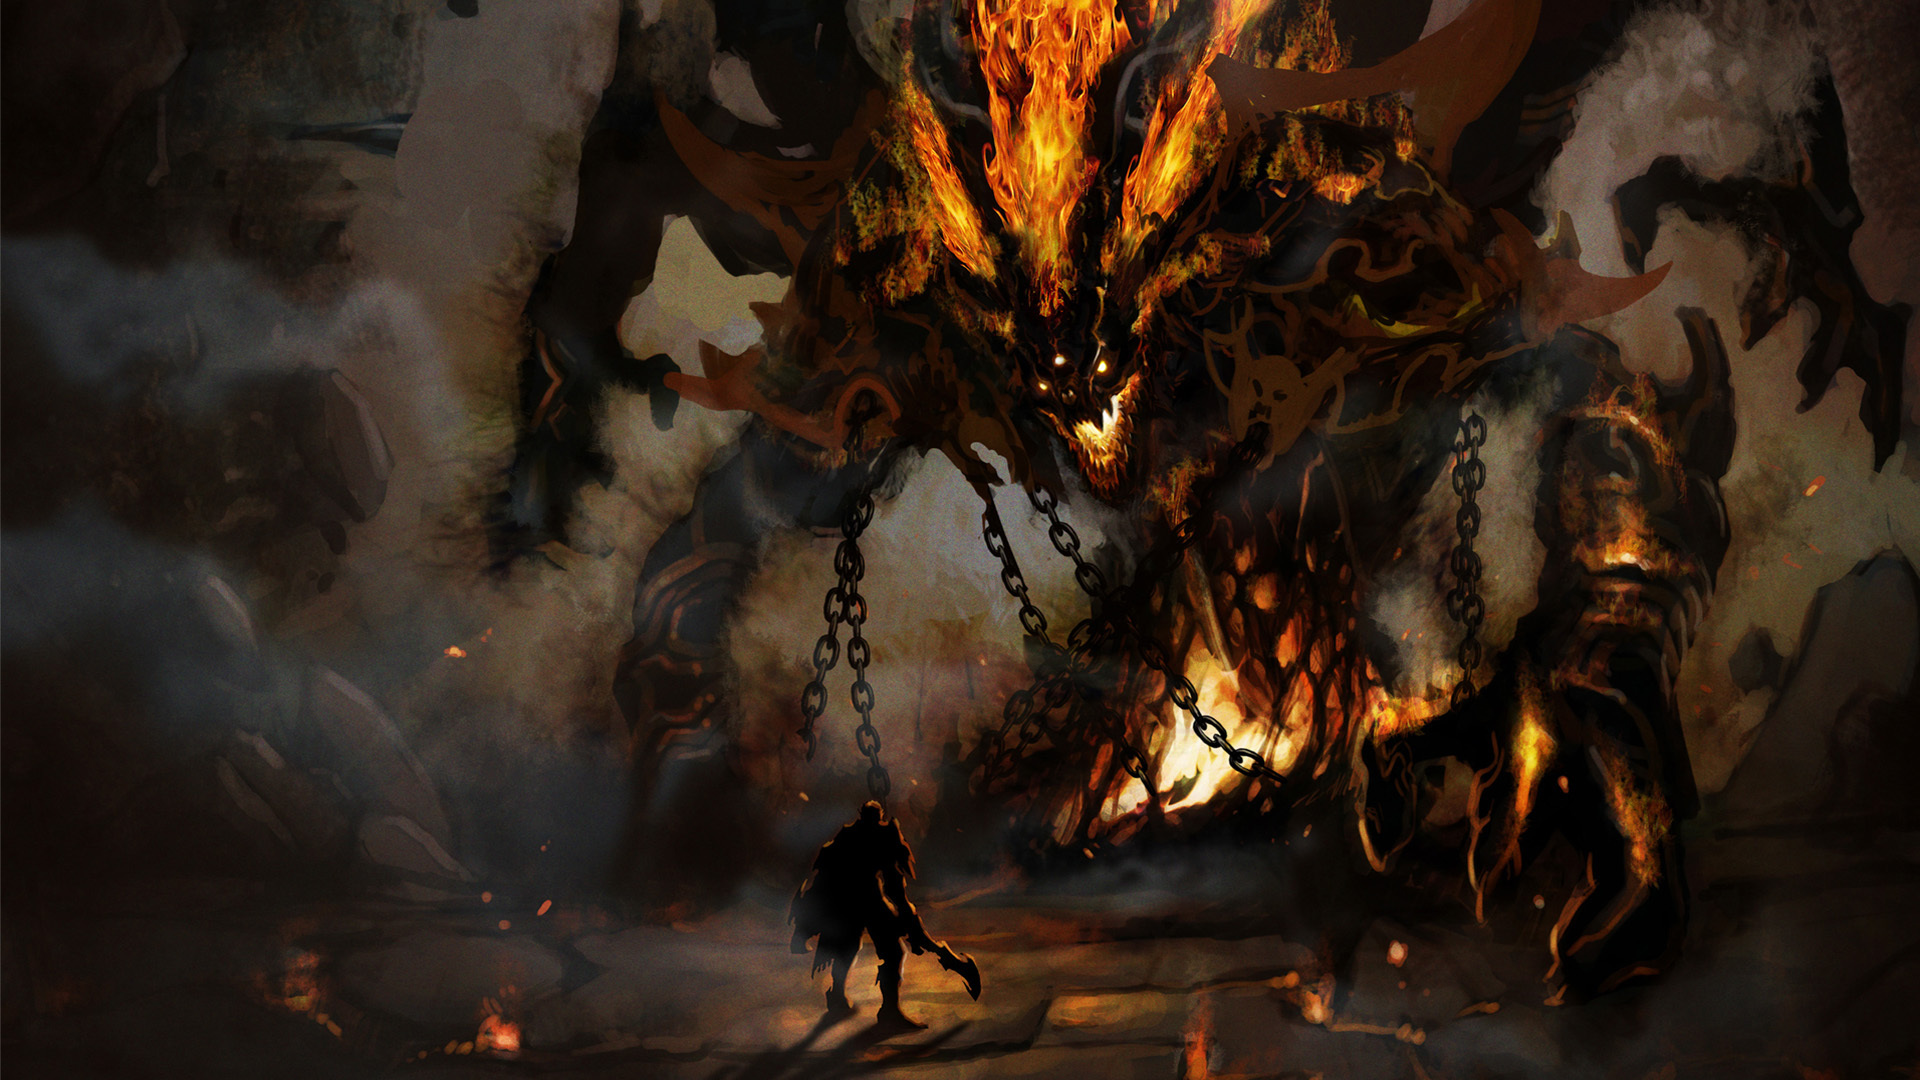 imagination, monsters, demon, colossus, hell, cyberpunk wallpapers et